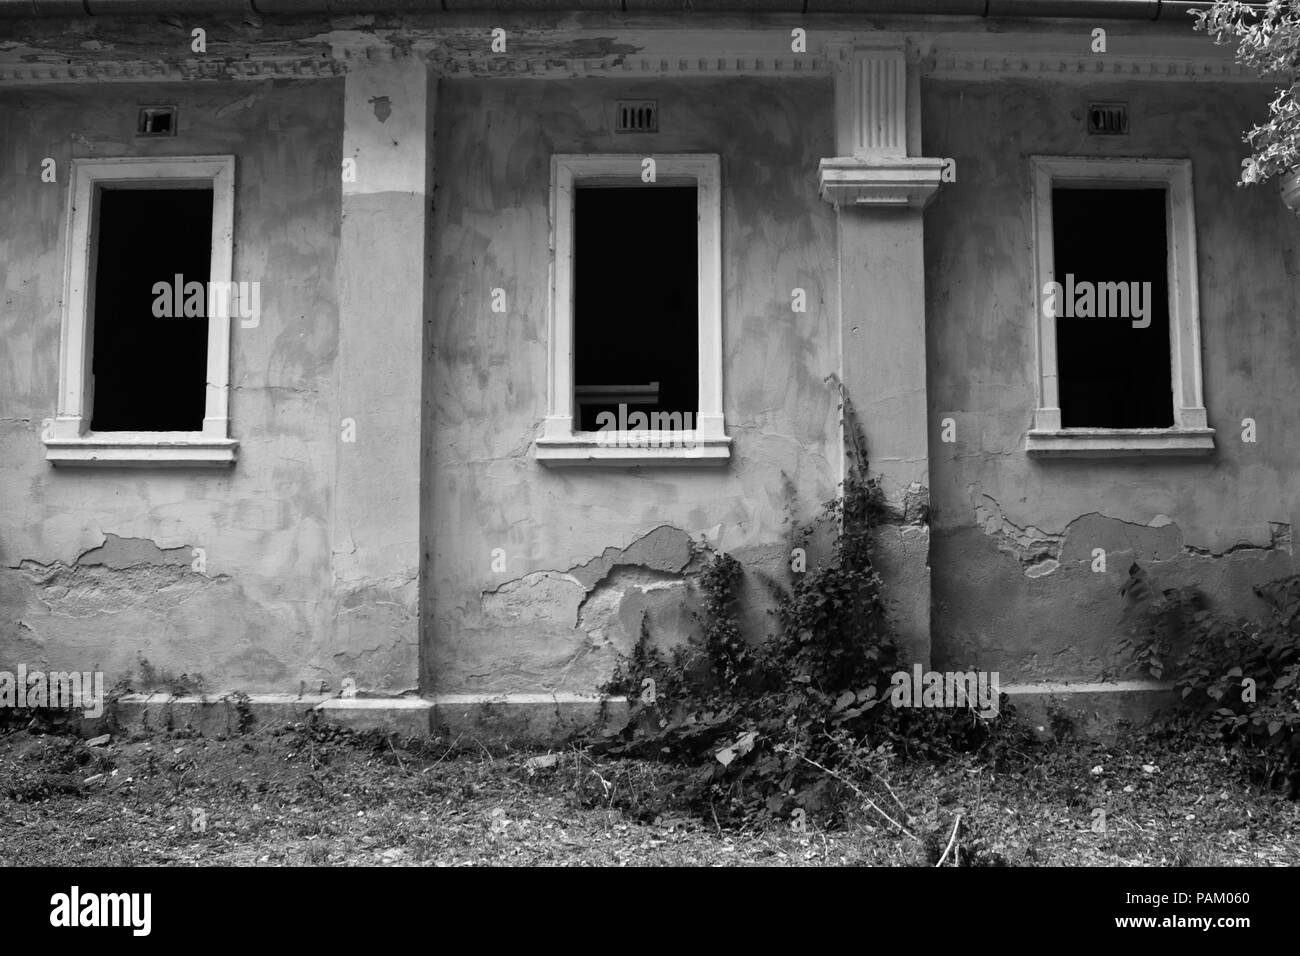 Three windows in an abandoned building in black and white - Stock Image